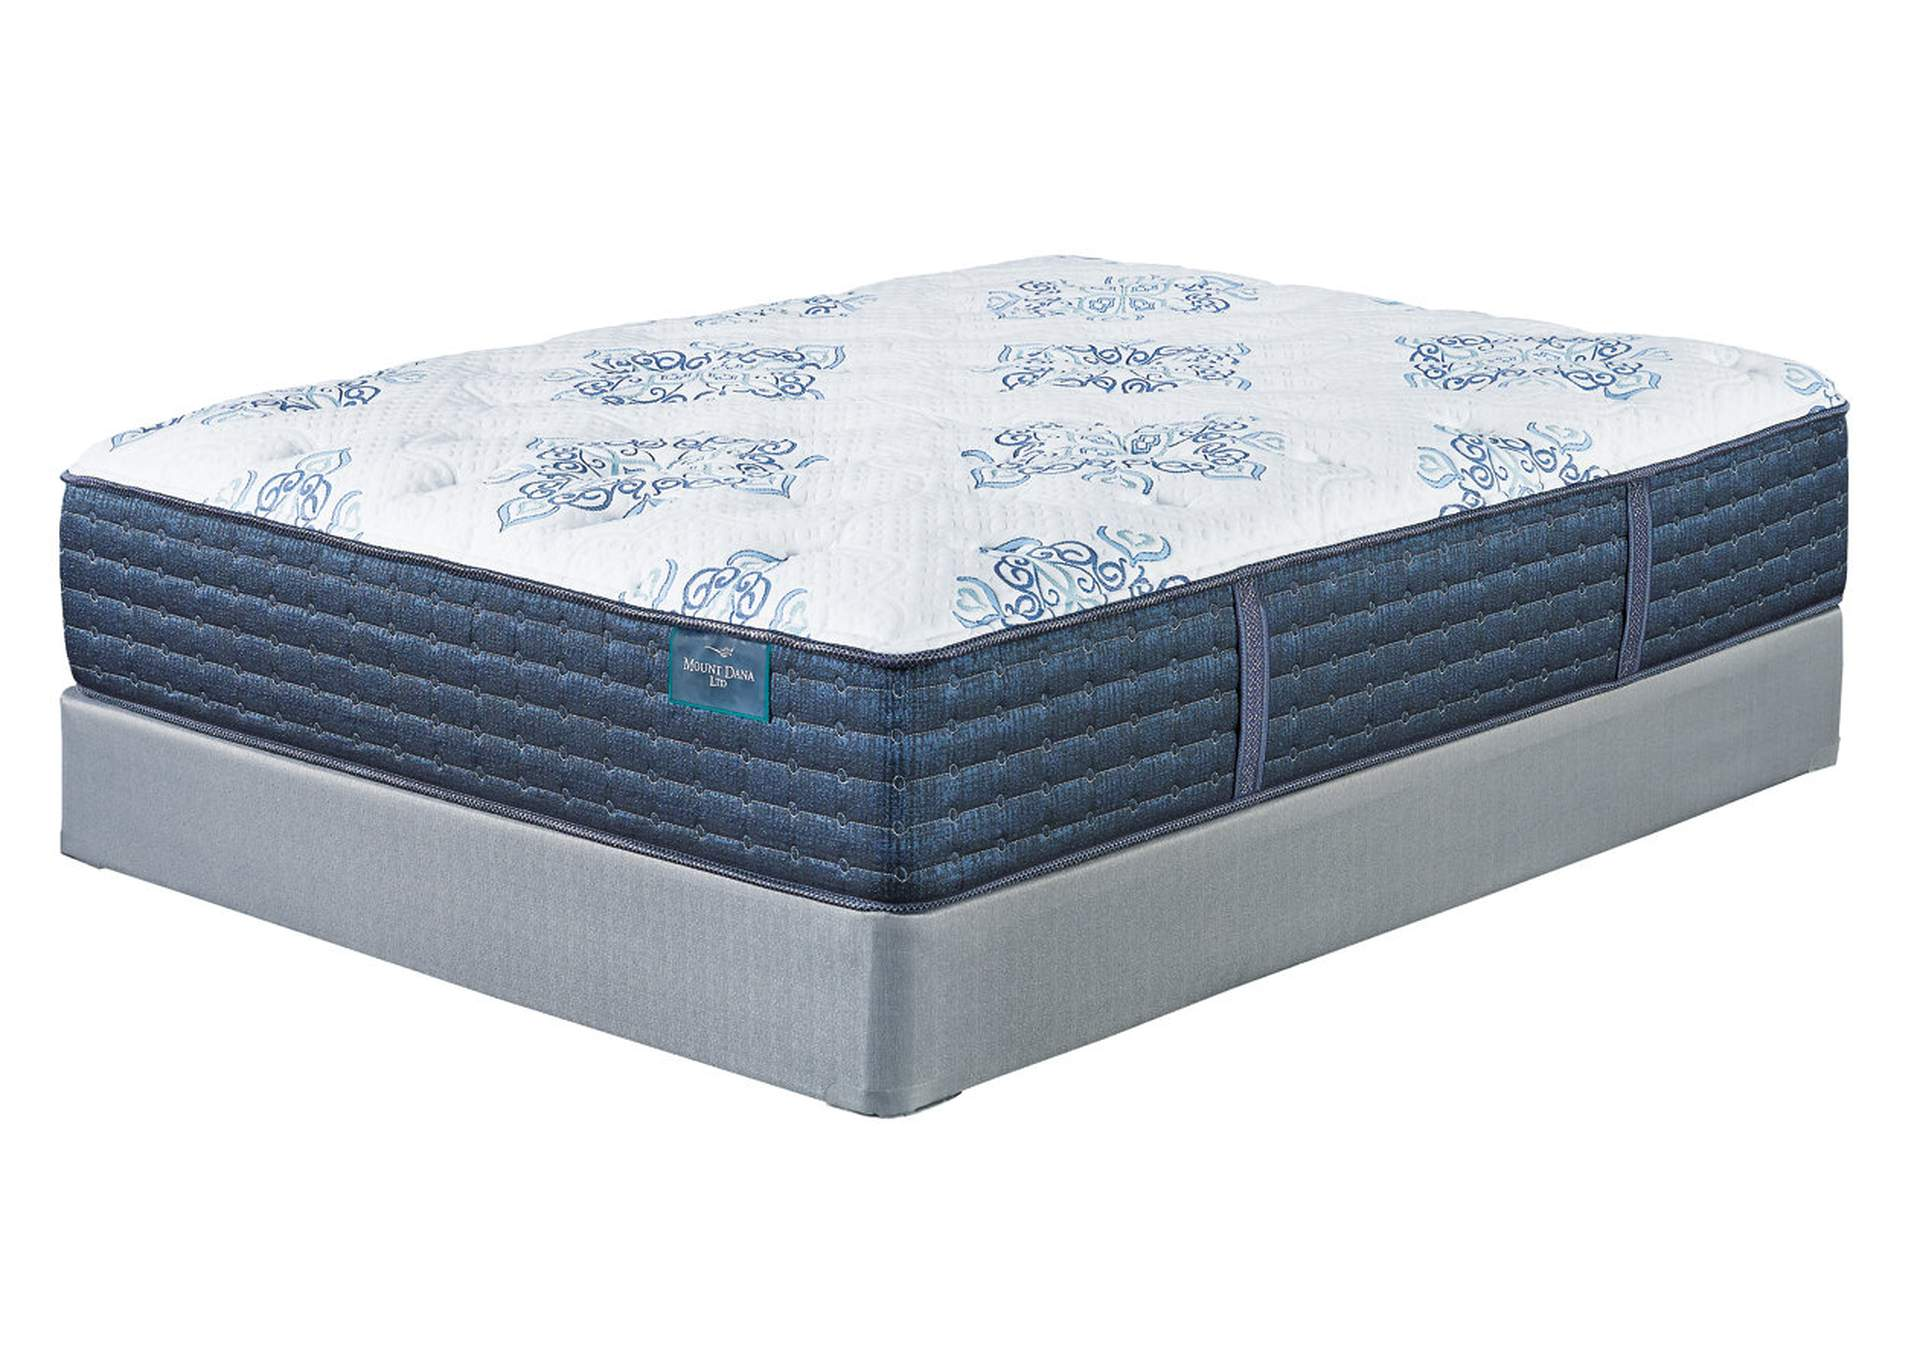 Mt. Dana Plush White King Mattress,Sierra Sleep